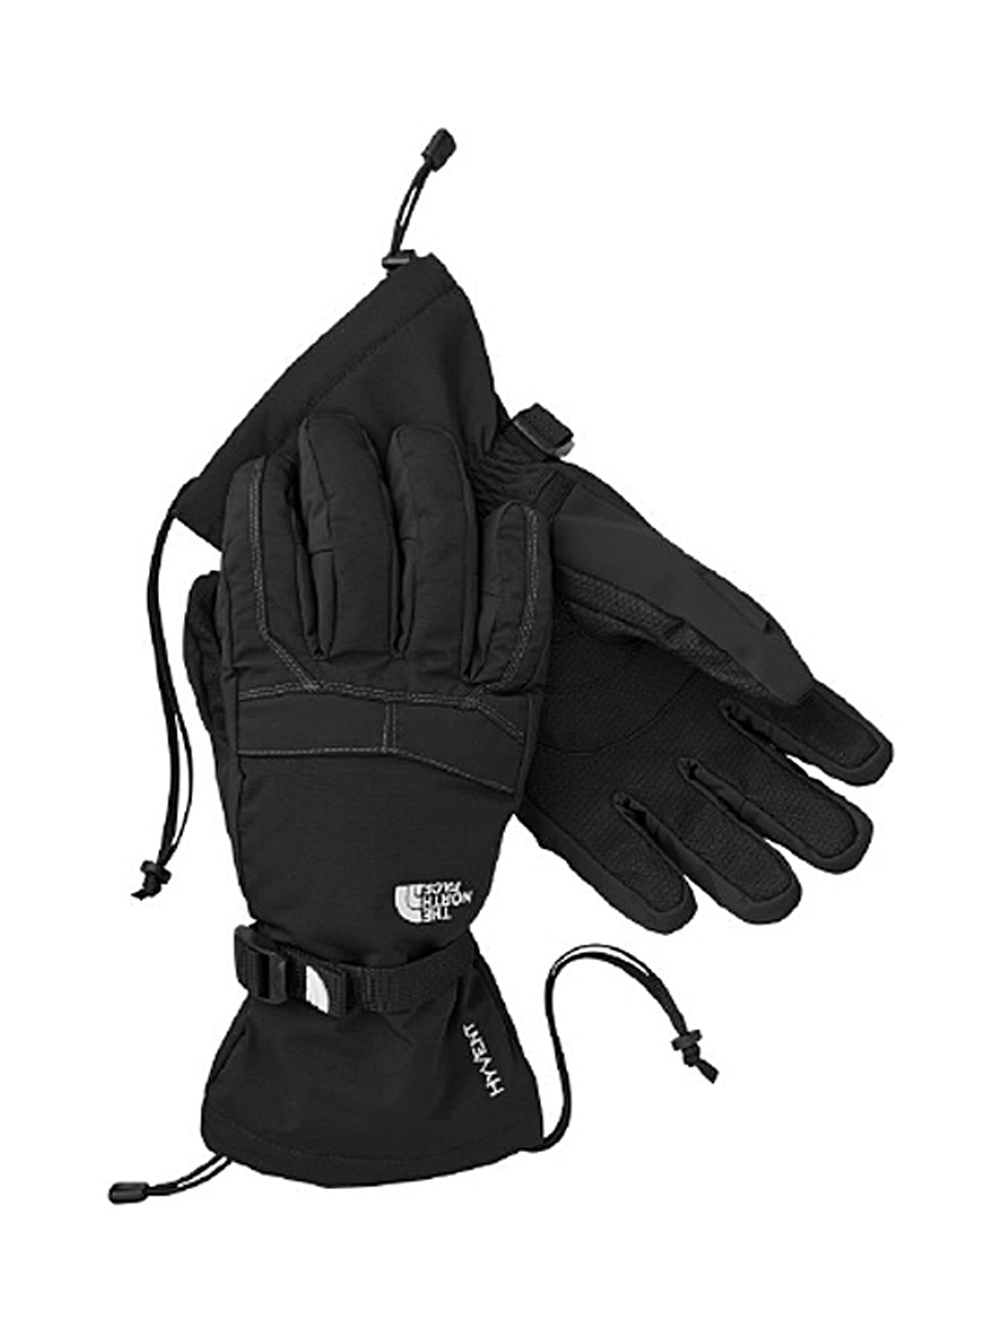 The North Face Men's Montana Gloves (Sizes S - XL)